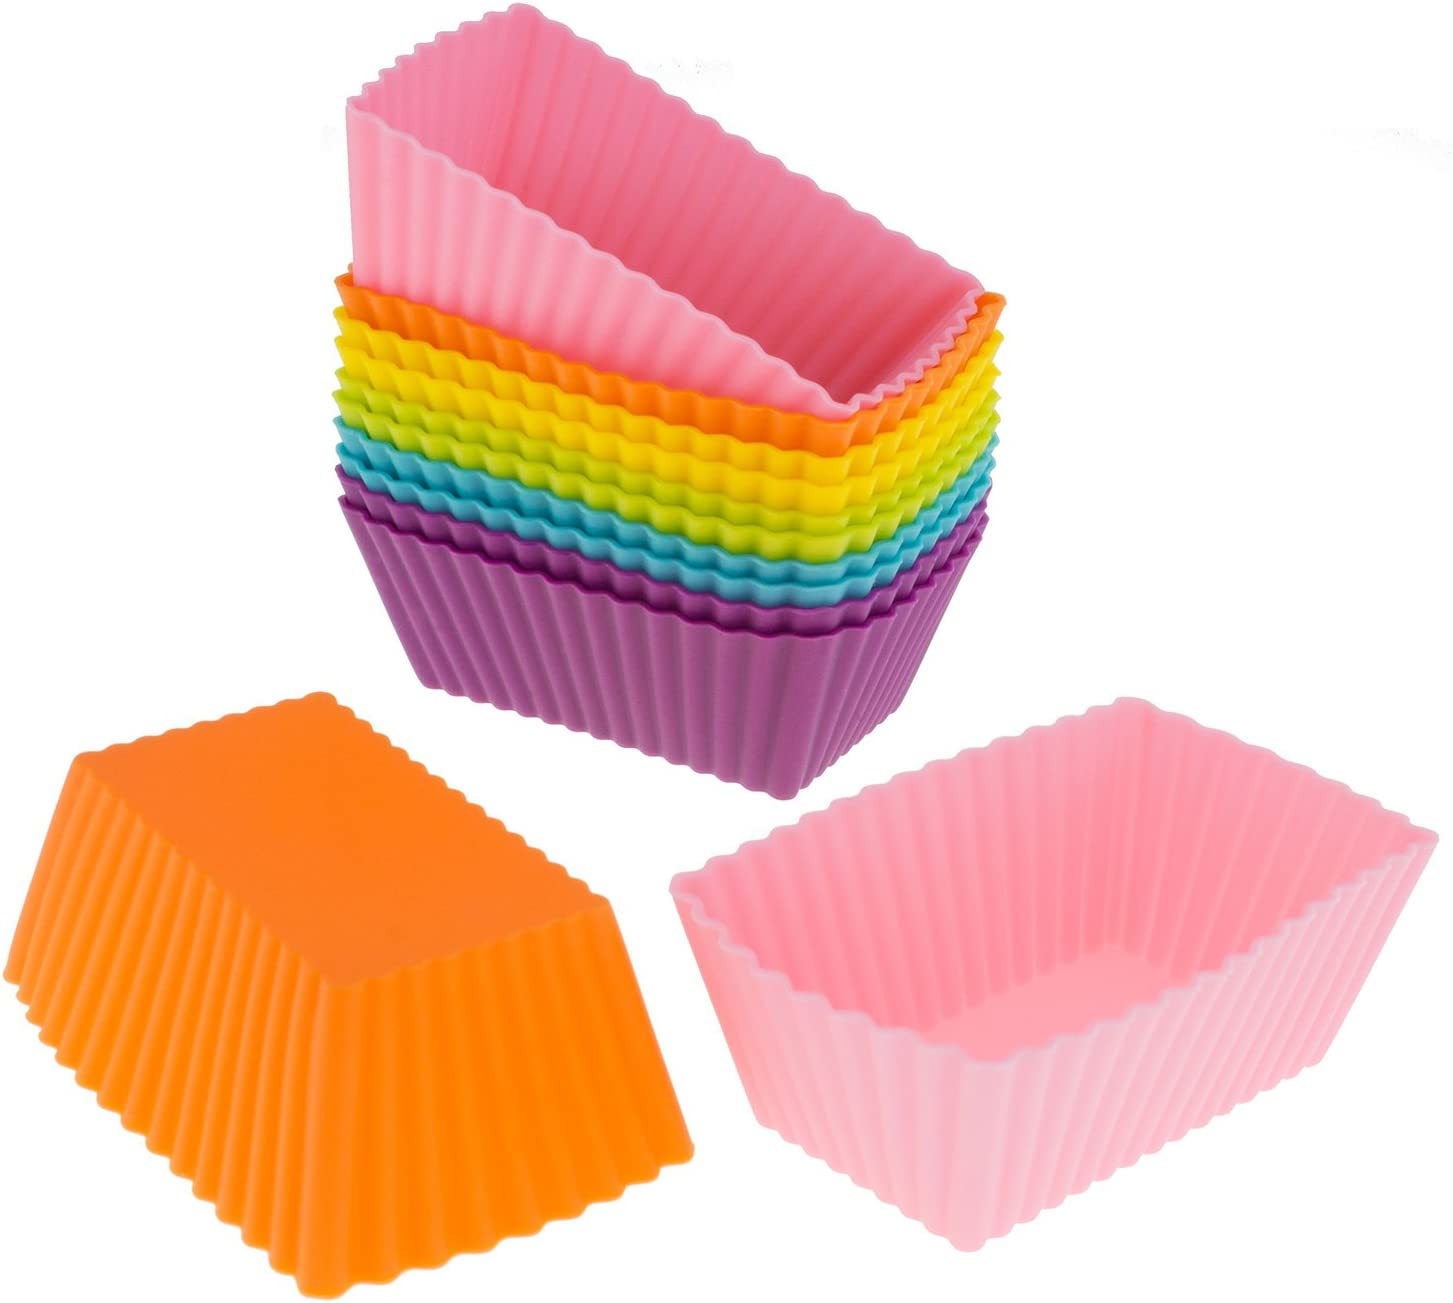 Freshware Cb 308sc 12 Pack Silicone Mini Rectangle Reusable Cupcake And Muffin Baking Cup Six Vibrant Colors Amazon Ca Home Kitchen